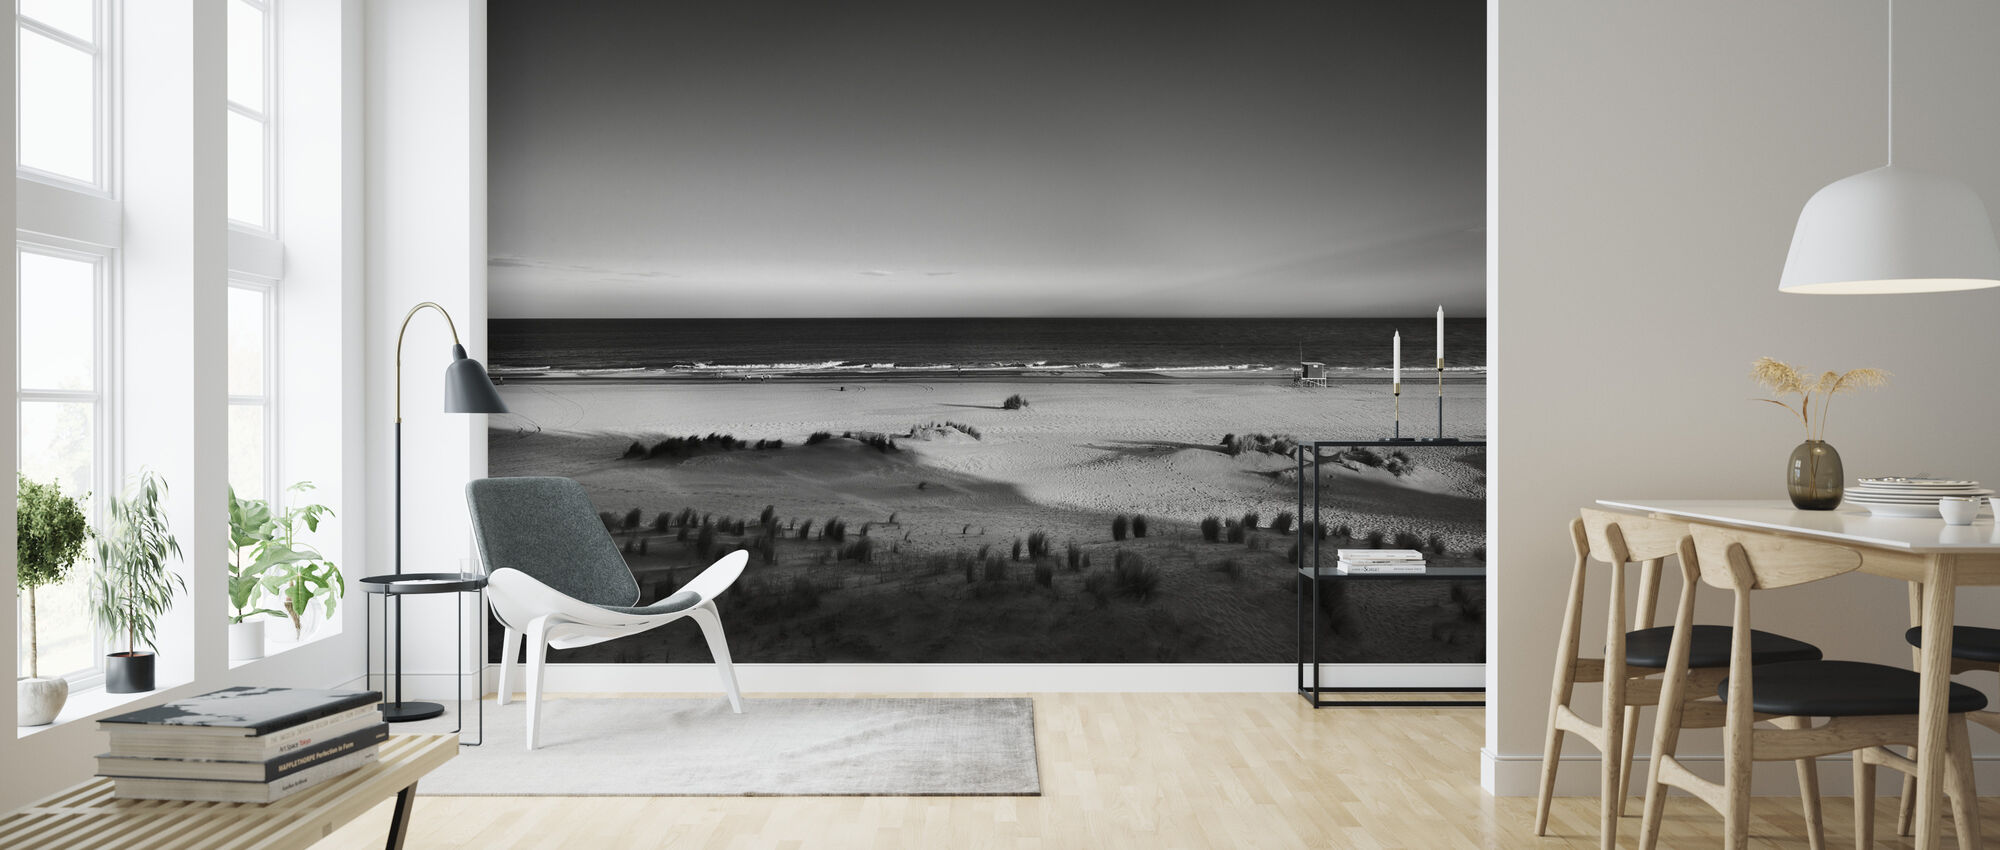 Beach in Argentina - Wallpaper - Living Room